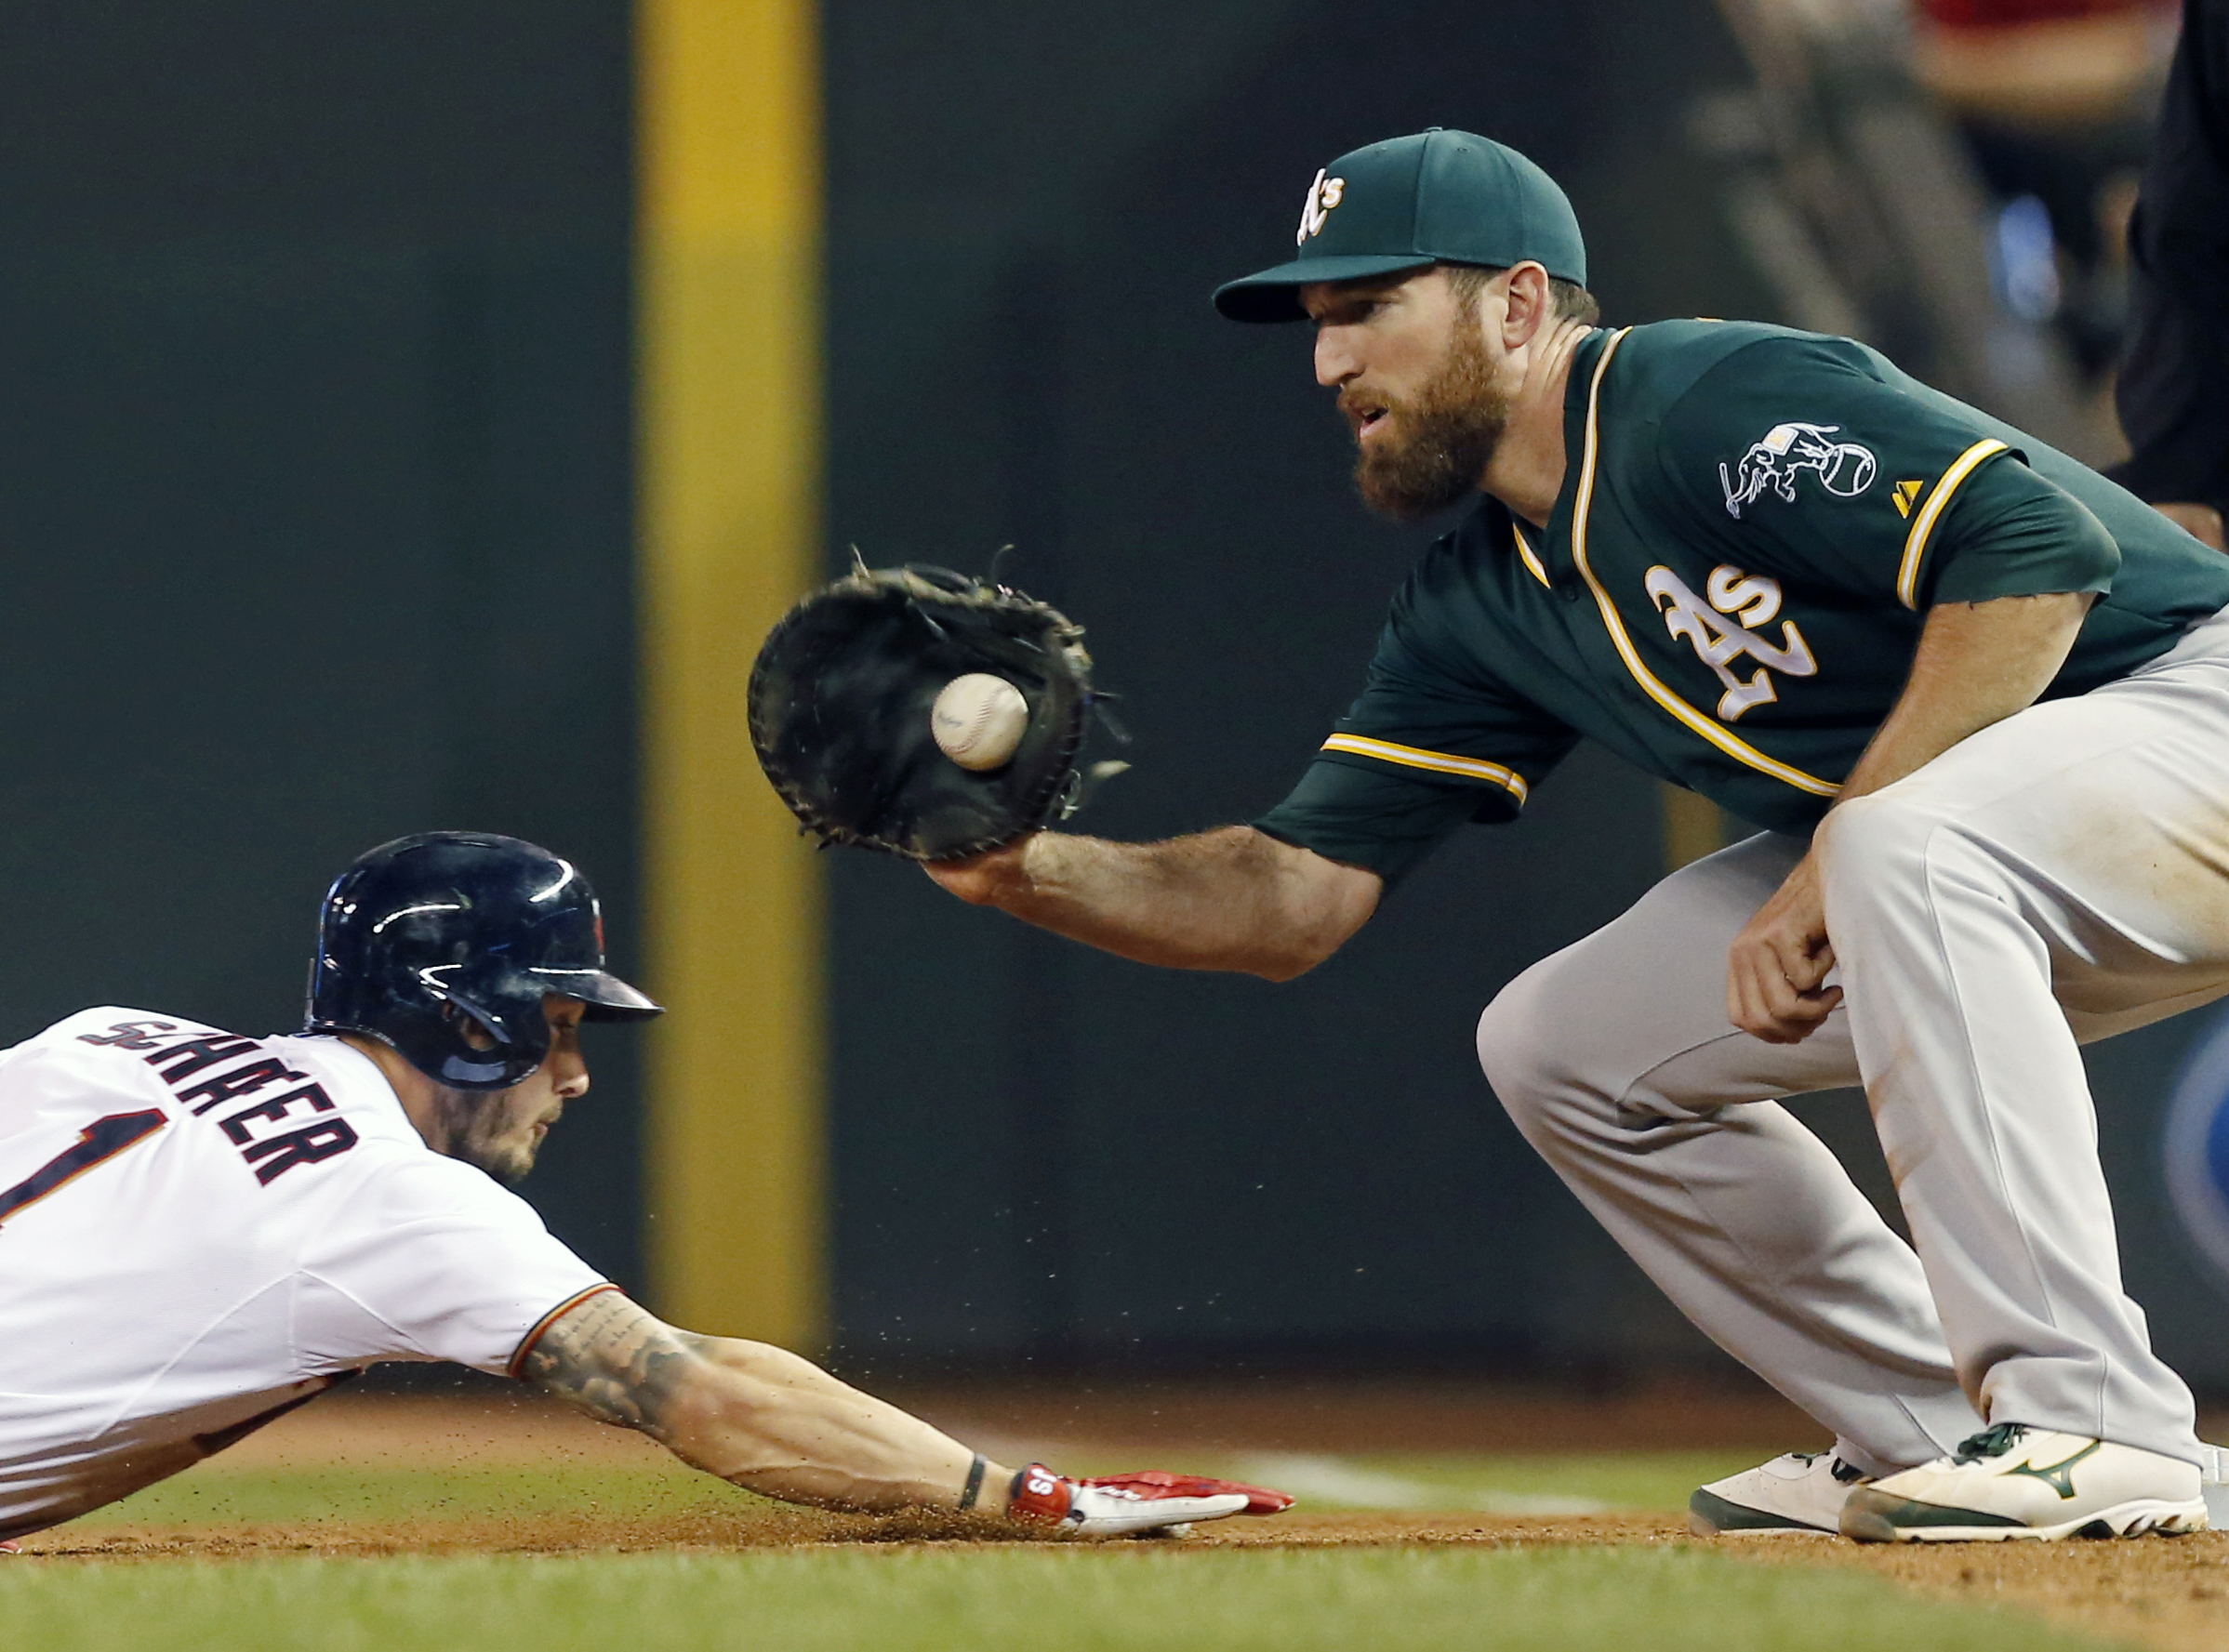 In this Monday, May 4, 2015 photo, Minnesota Twinsi Jordan Schafer, left, slides safely back to first to beat a pickoff attempt by Oakland Athletics first baseman Ike Davis in the fourth inning of a baseball game in Minneapolis. The New York Yankees are t